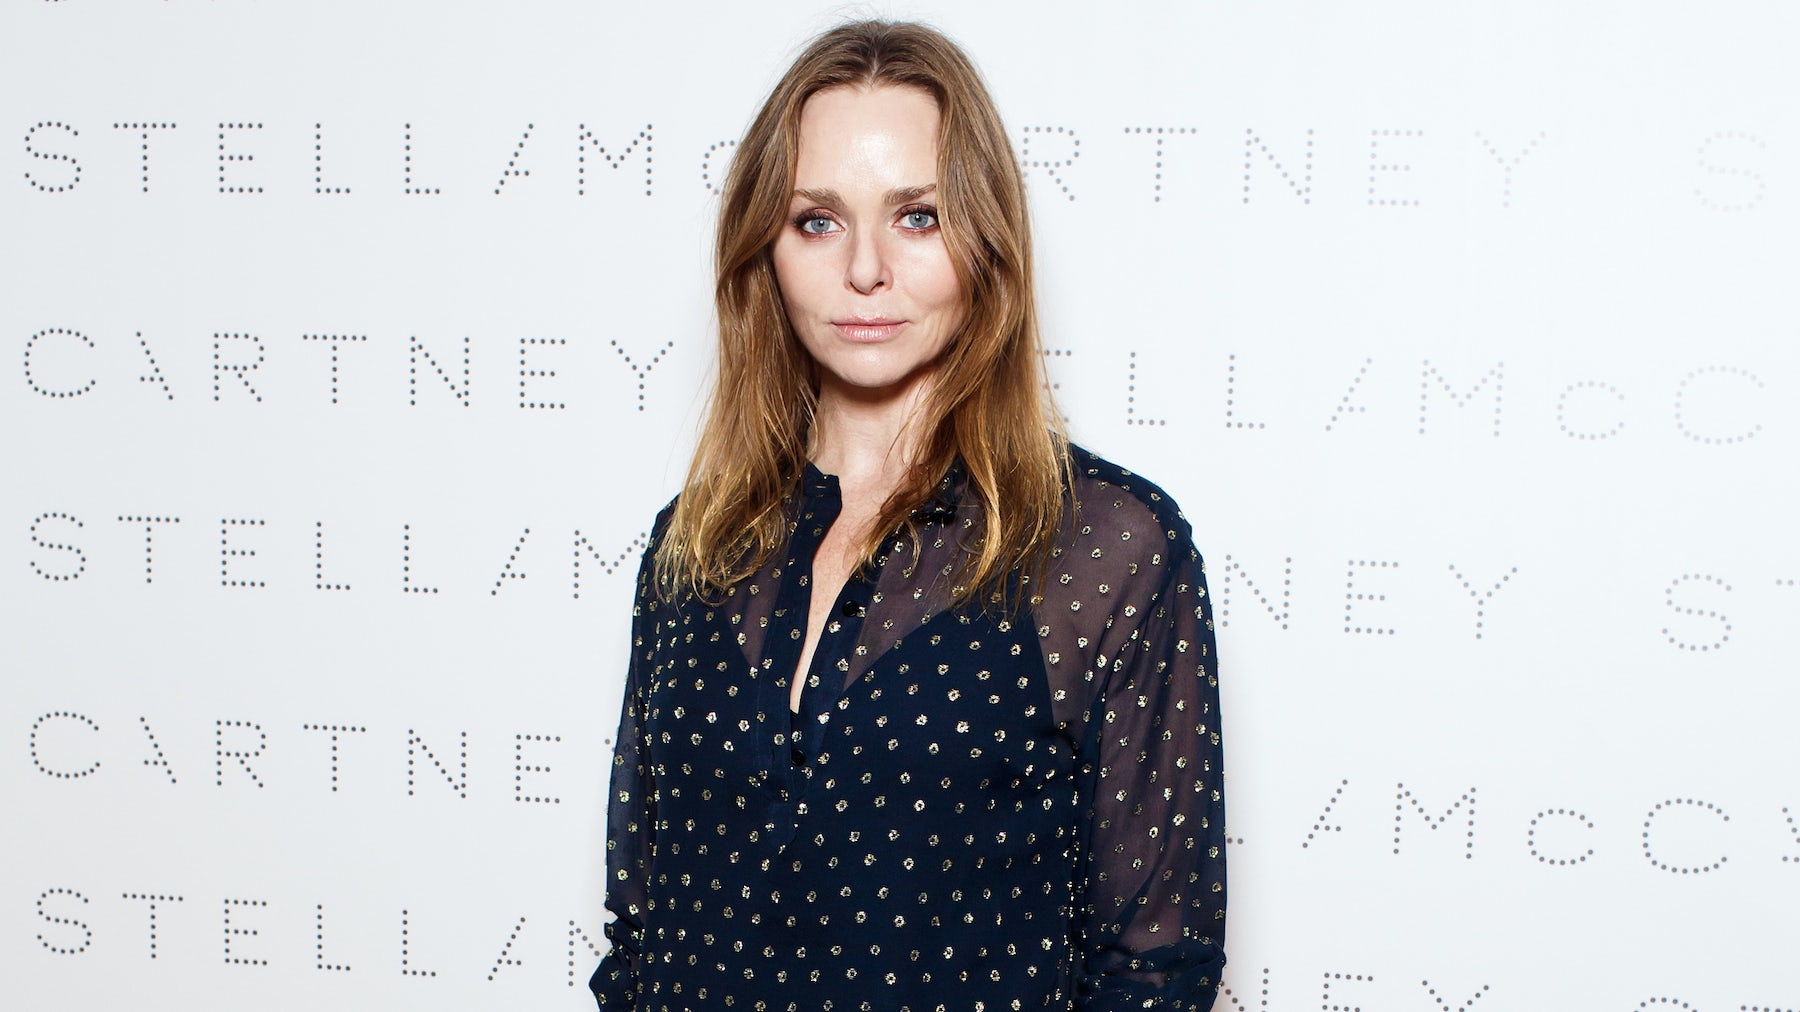 Stella McCartney | Source: Shutterstock